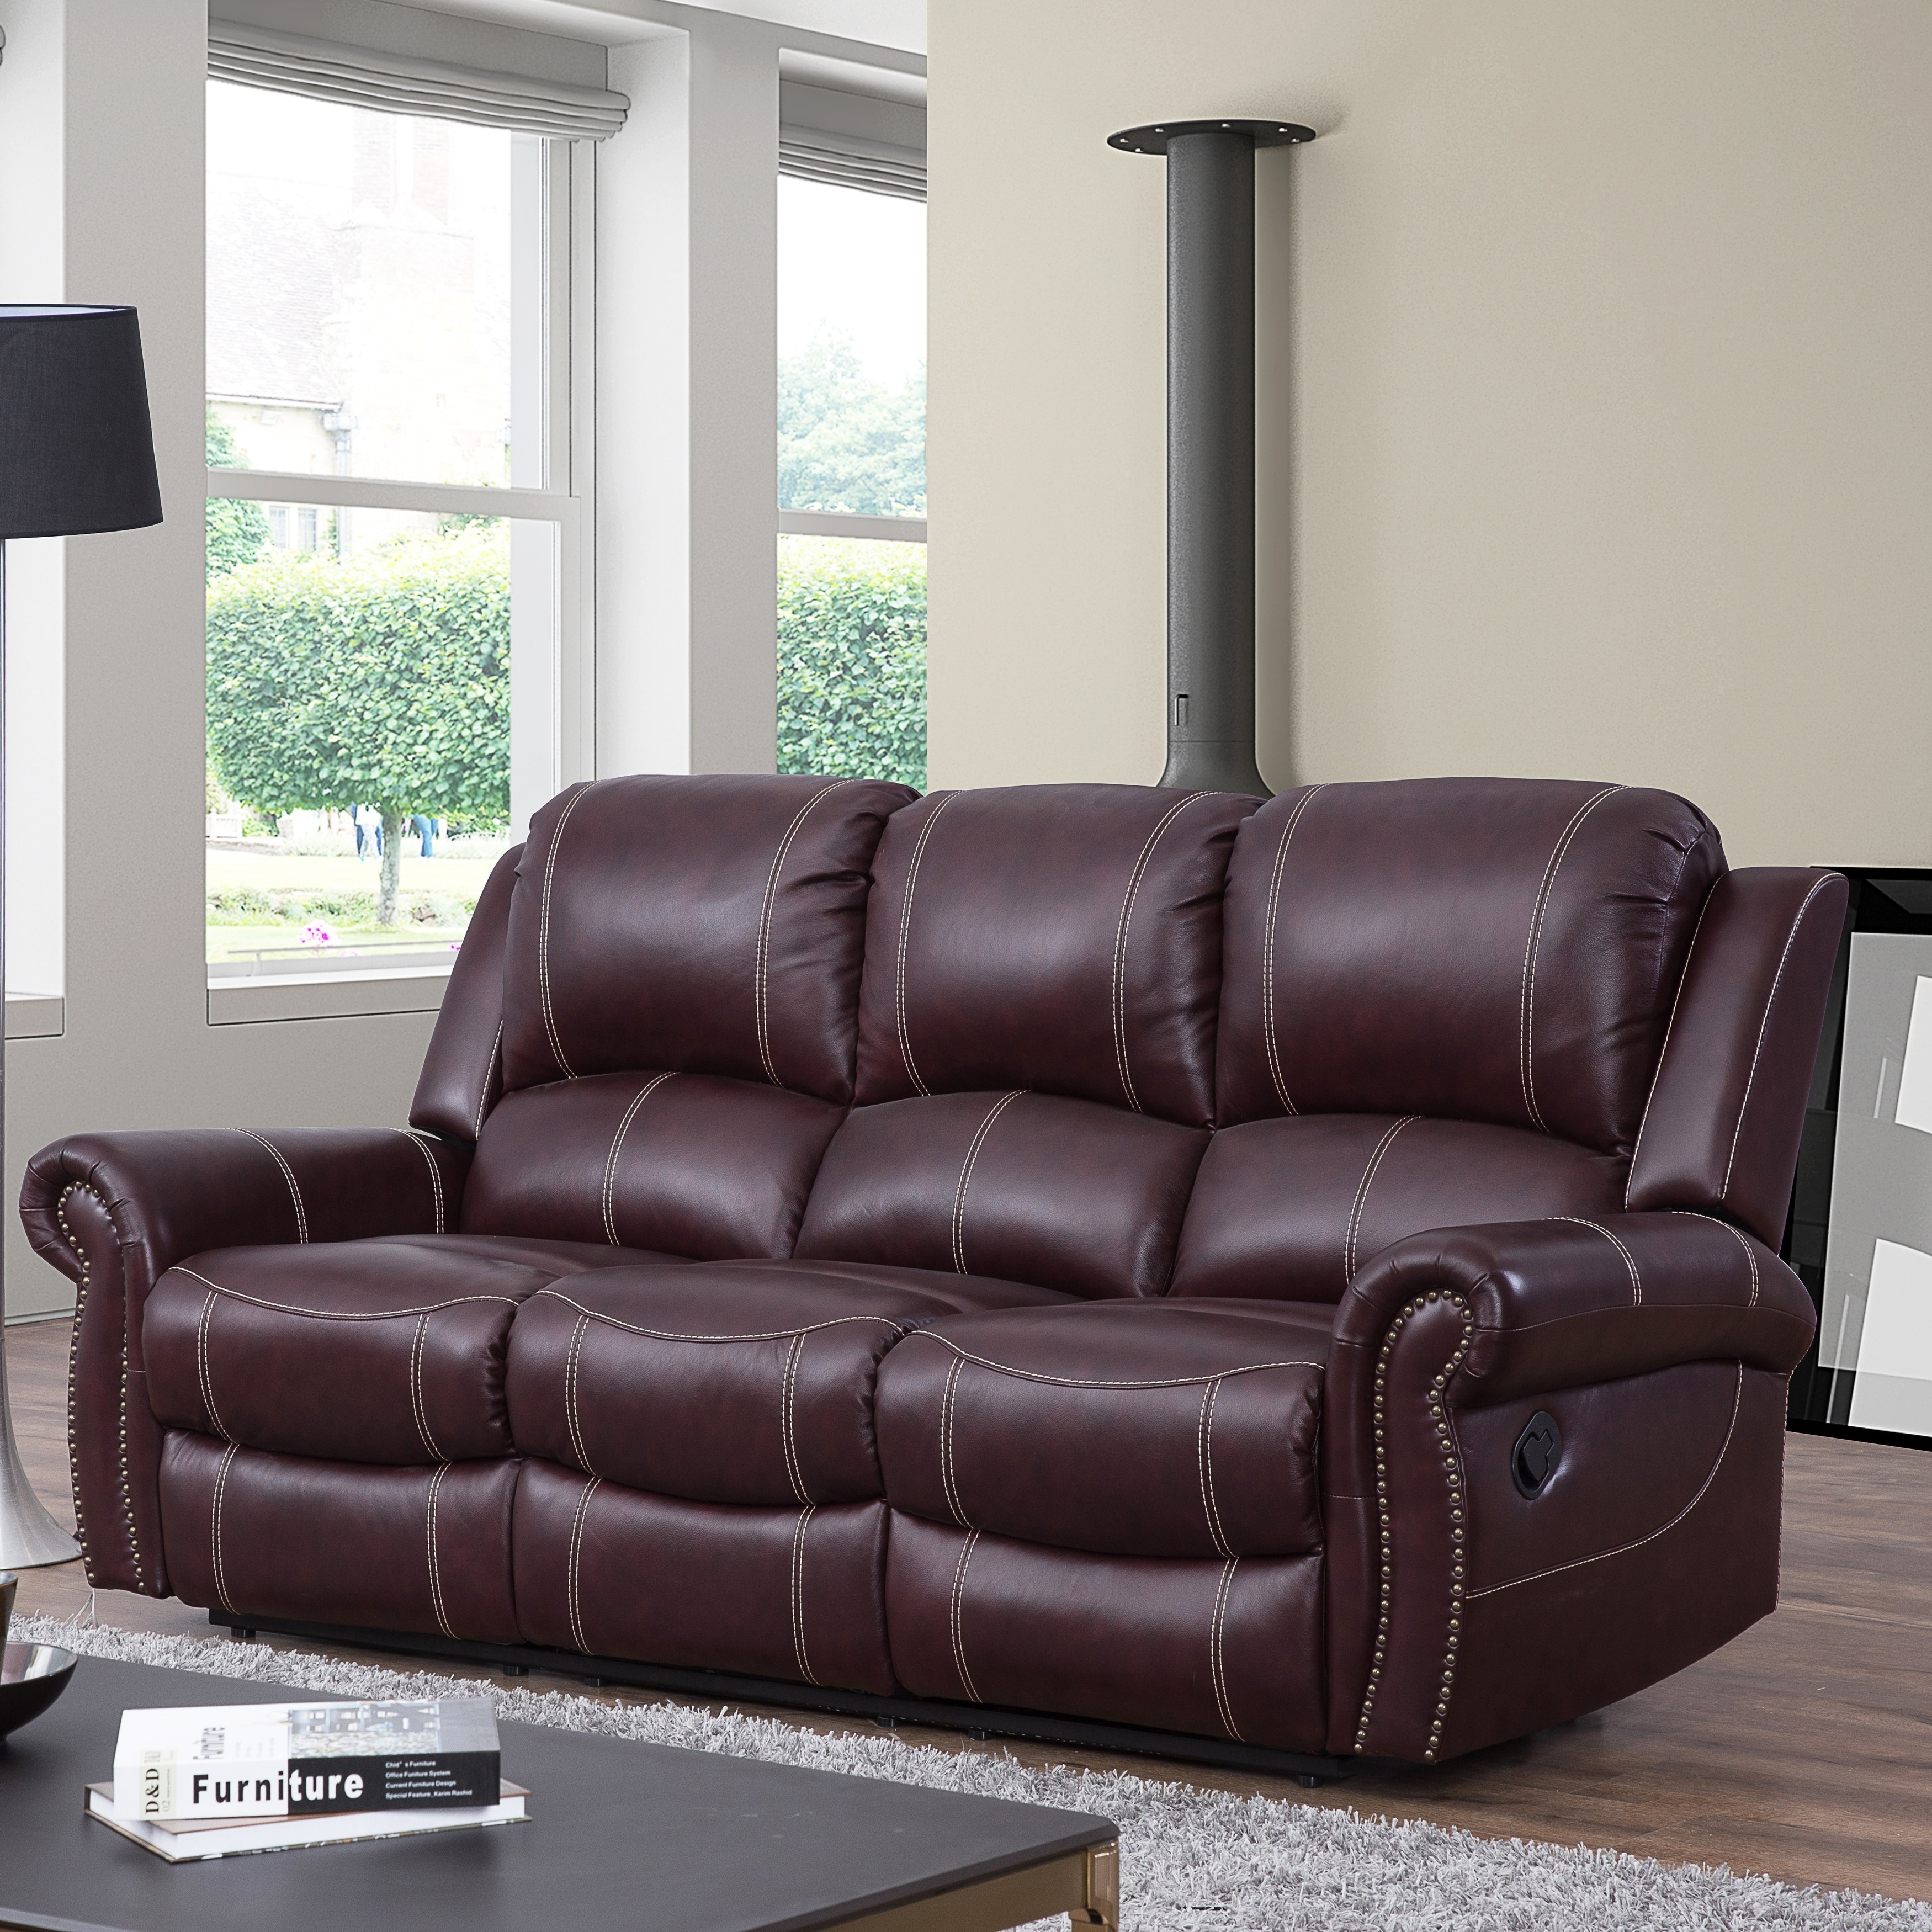 Fine Buy Recliner Leather Sofas Couches Online At Overstock Andrewgaddart Wooden Chair Designs For Living Room Andrewgaddartcom